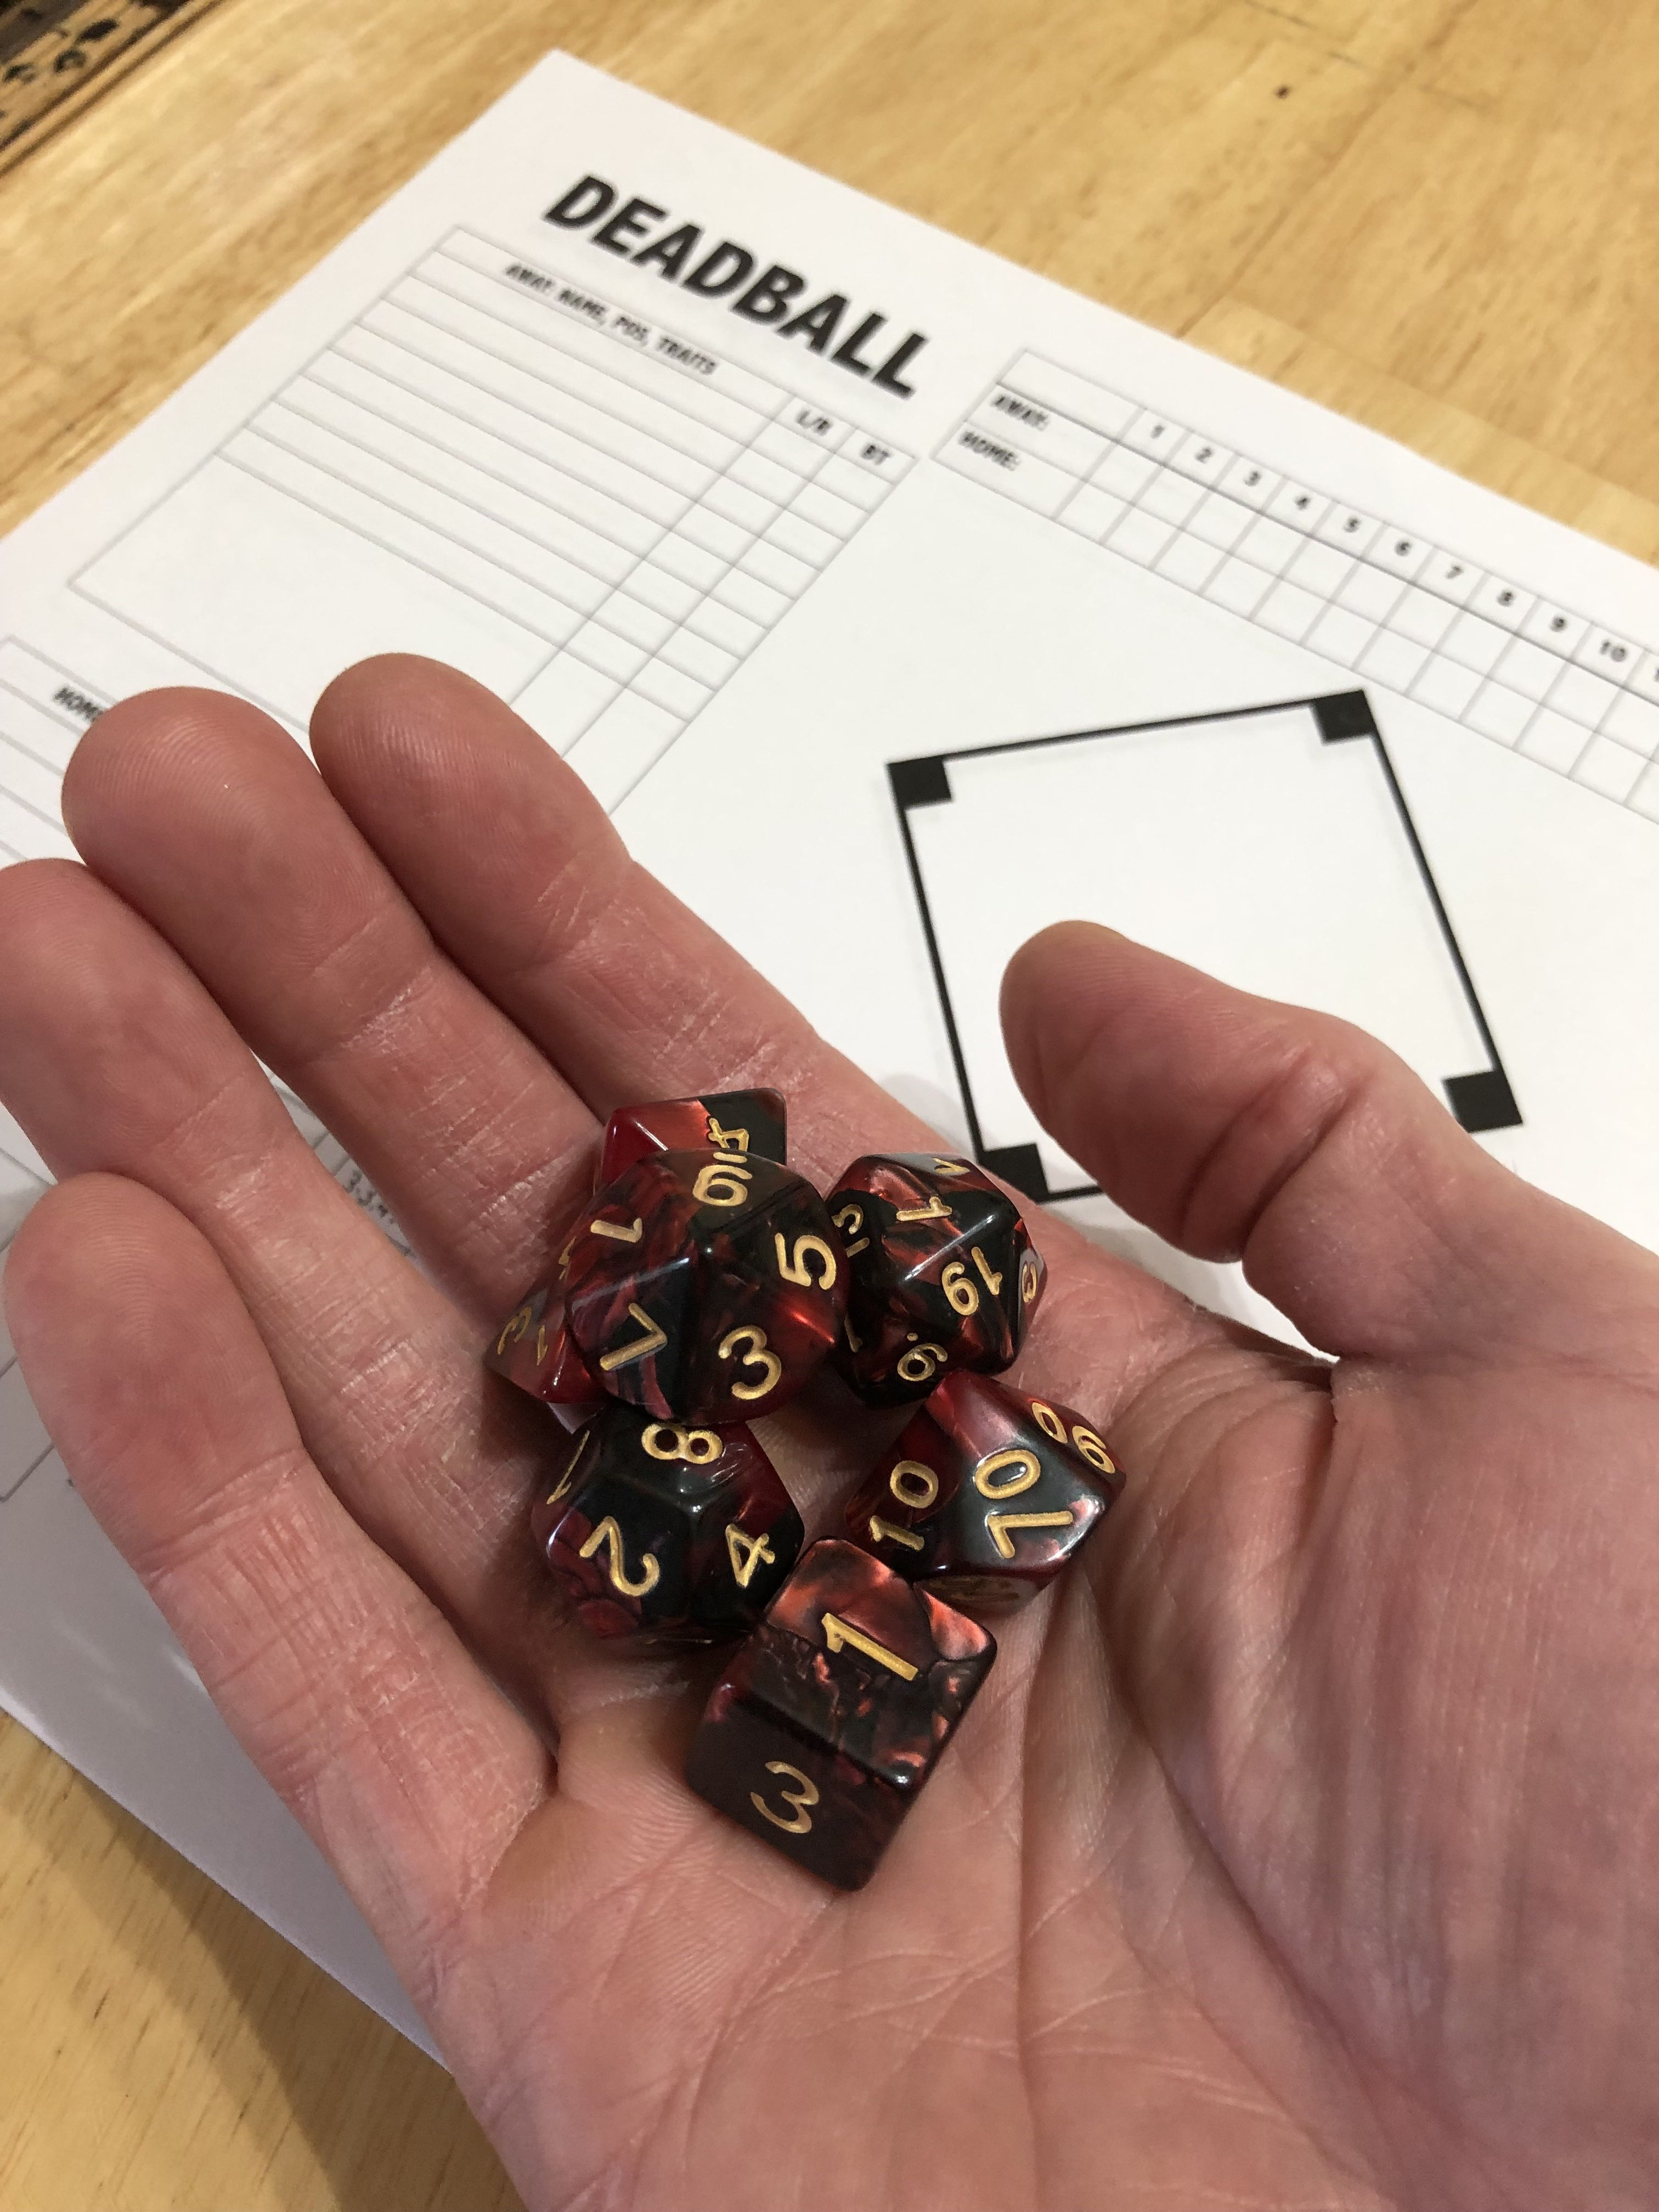 DAF new dice, just in time for an exciting new season of